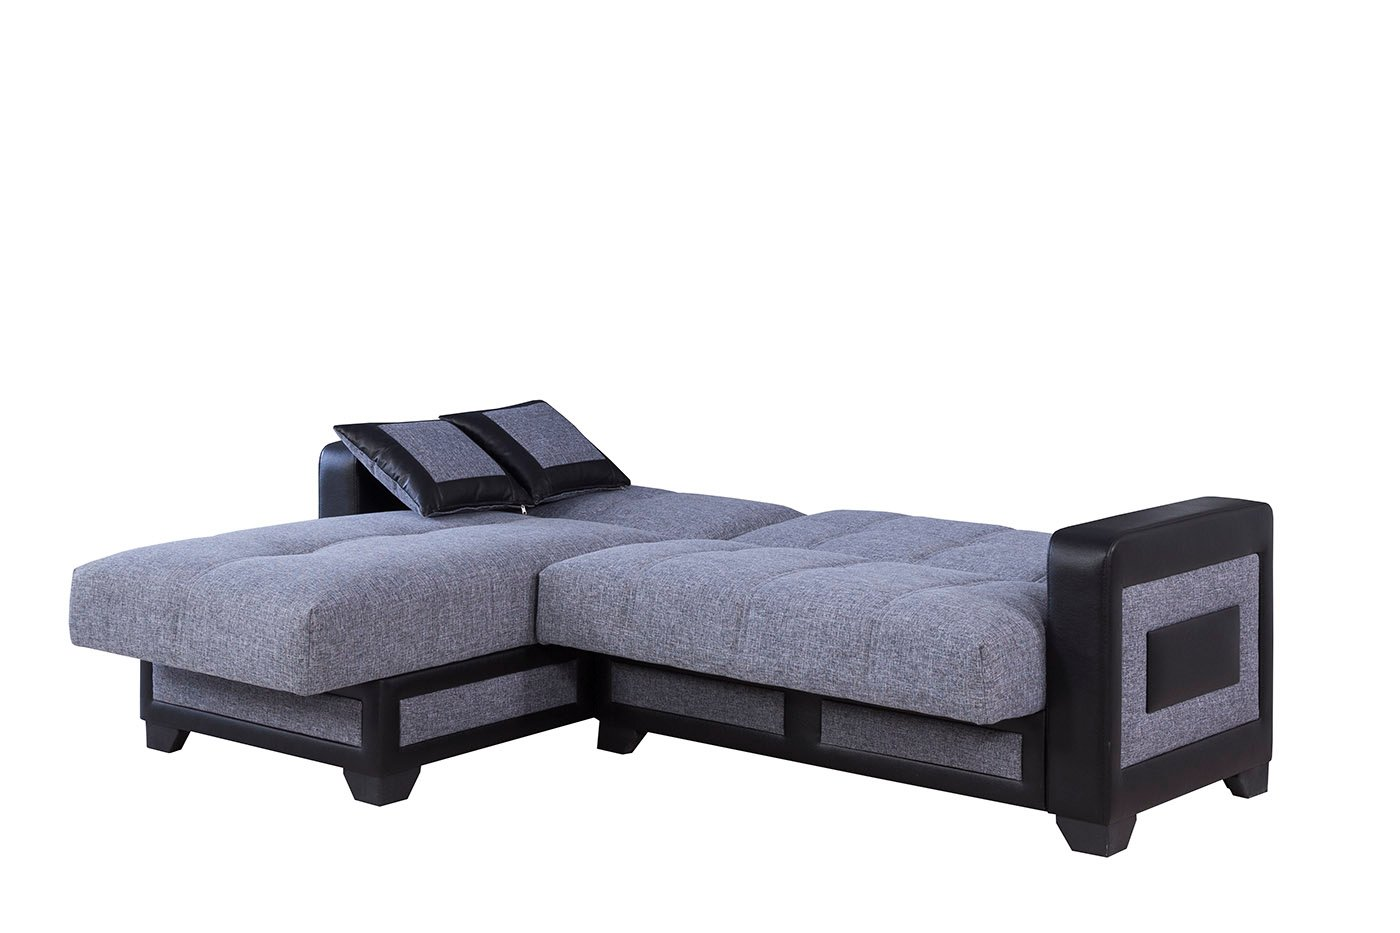 Elite Form Moon Gray Sectional Sofa by Casamode